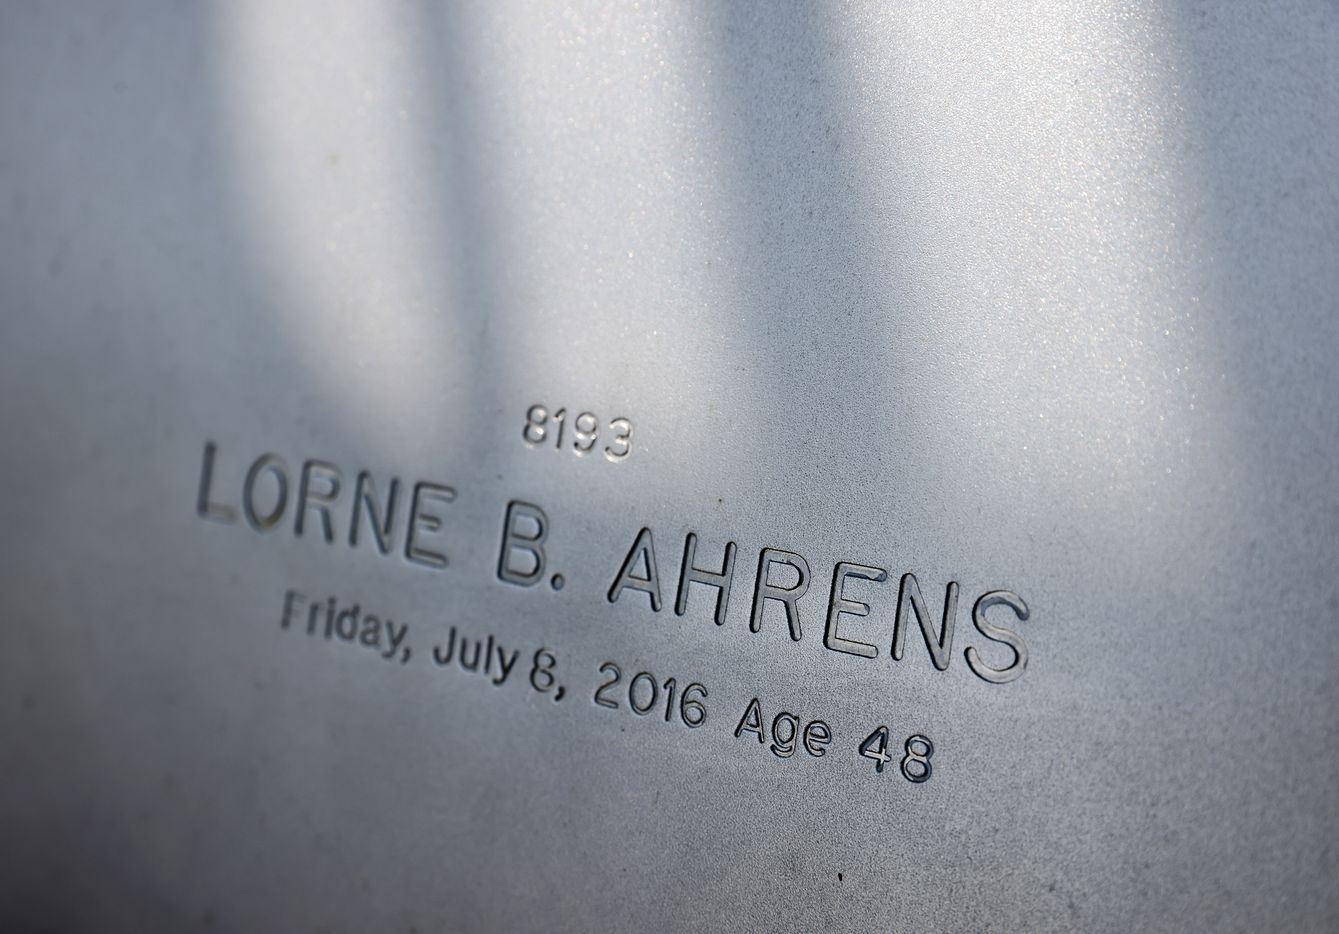 Dallas Police Sr. Cpl. Lorne B. Ahrens' name is etched in the Dallas Police Memorial as seen during the 2021 Police Memorial Day in downtown Dallas, Wednesday, July 7, 2021. It was the 5th anniversary of the July 7th ambush and special recognition was given to those officers, including Ahrens who died a day later.(Tom Fox/The Dallas Morning News)